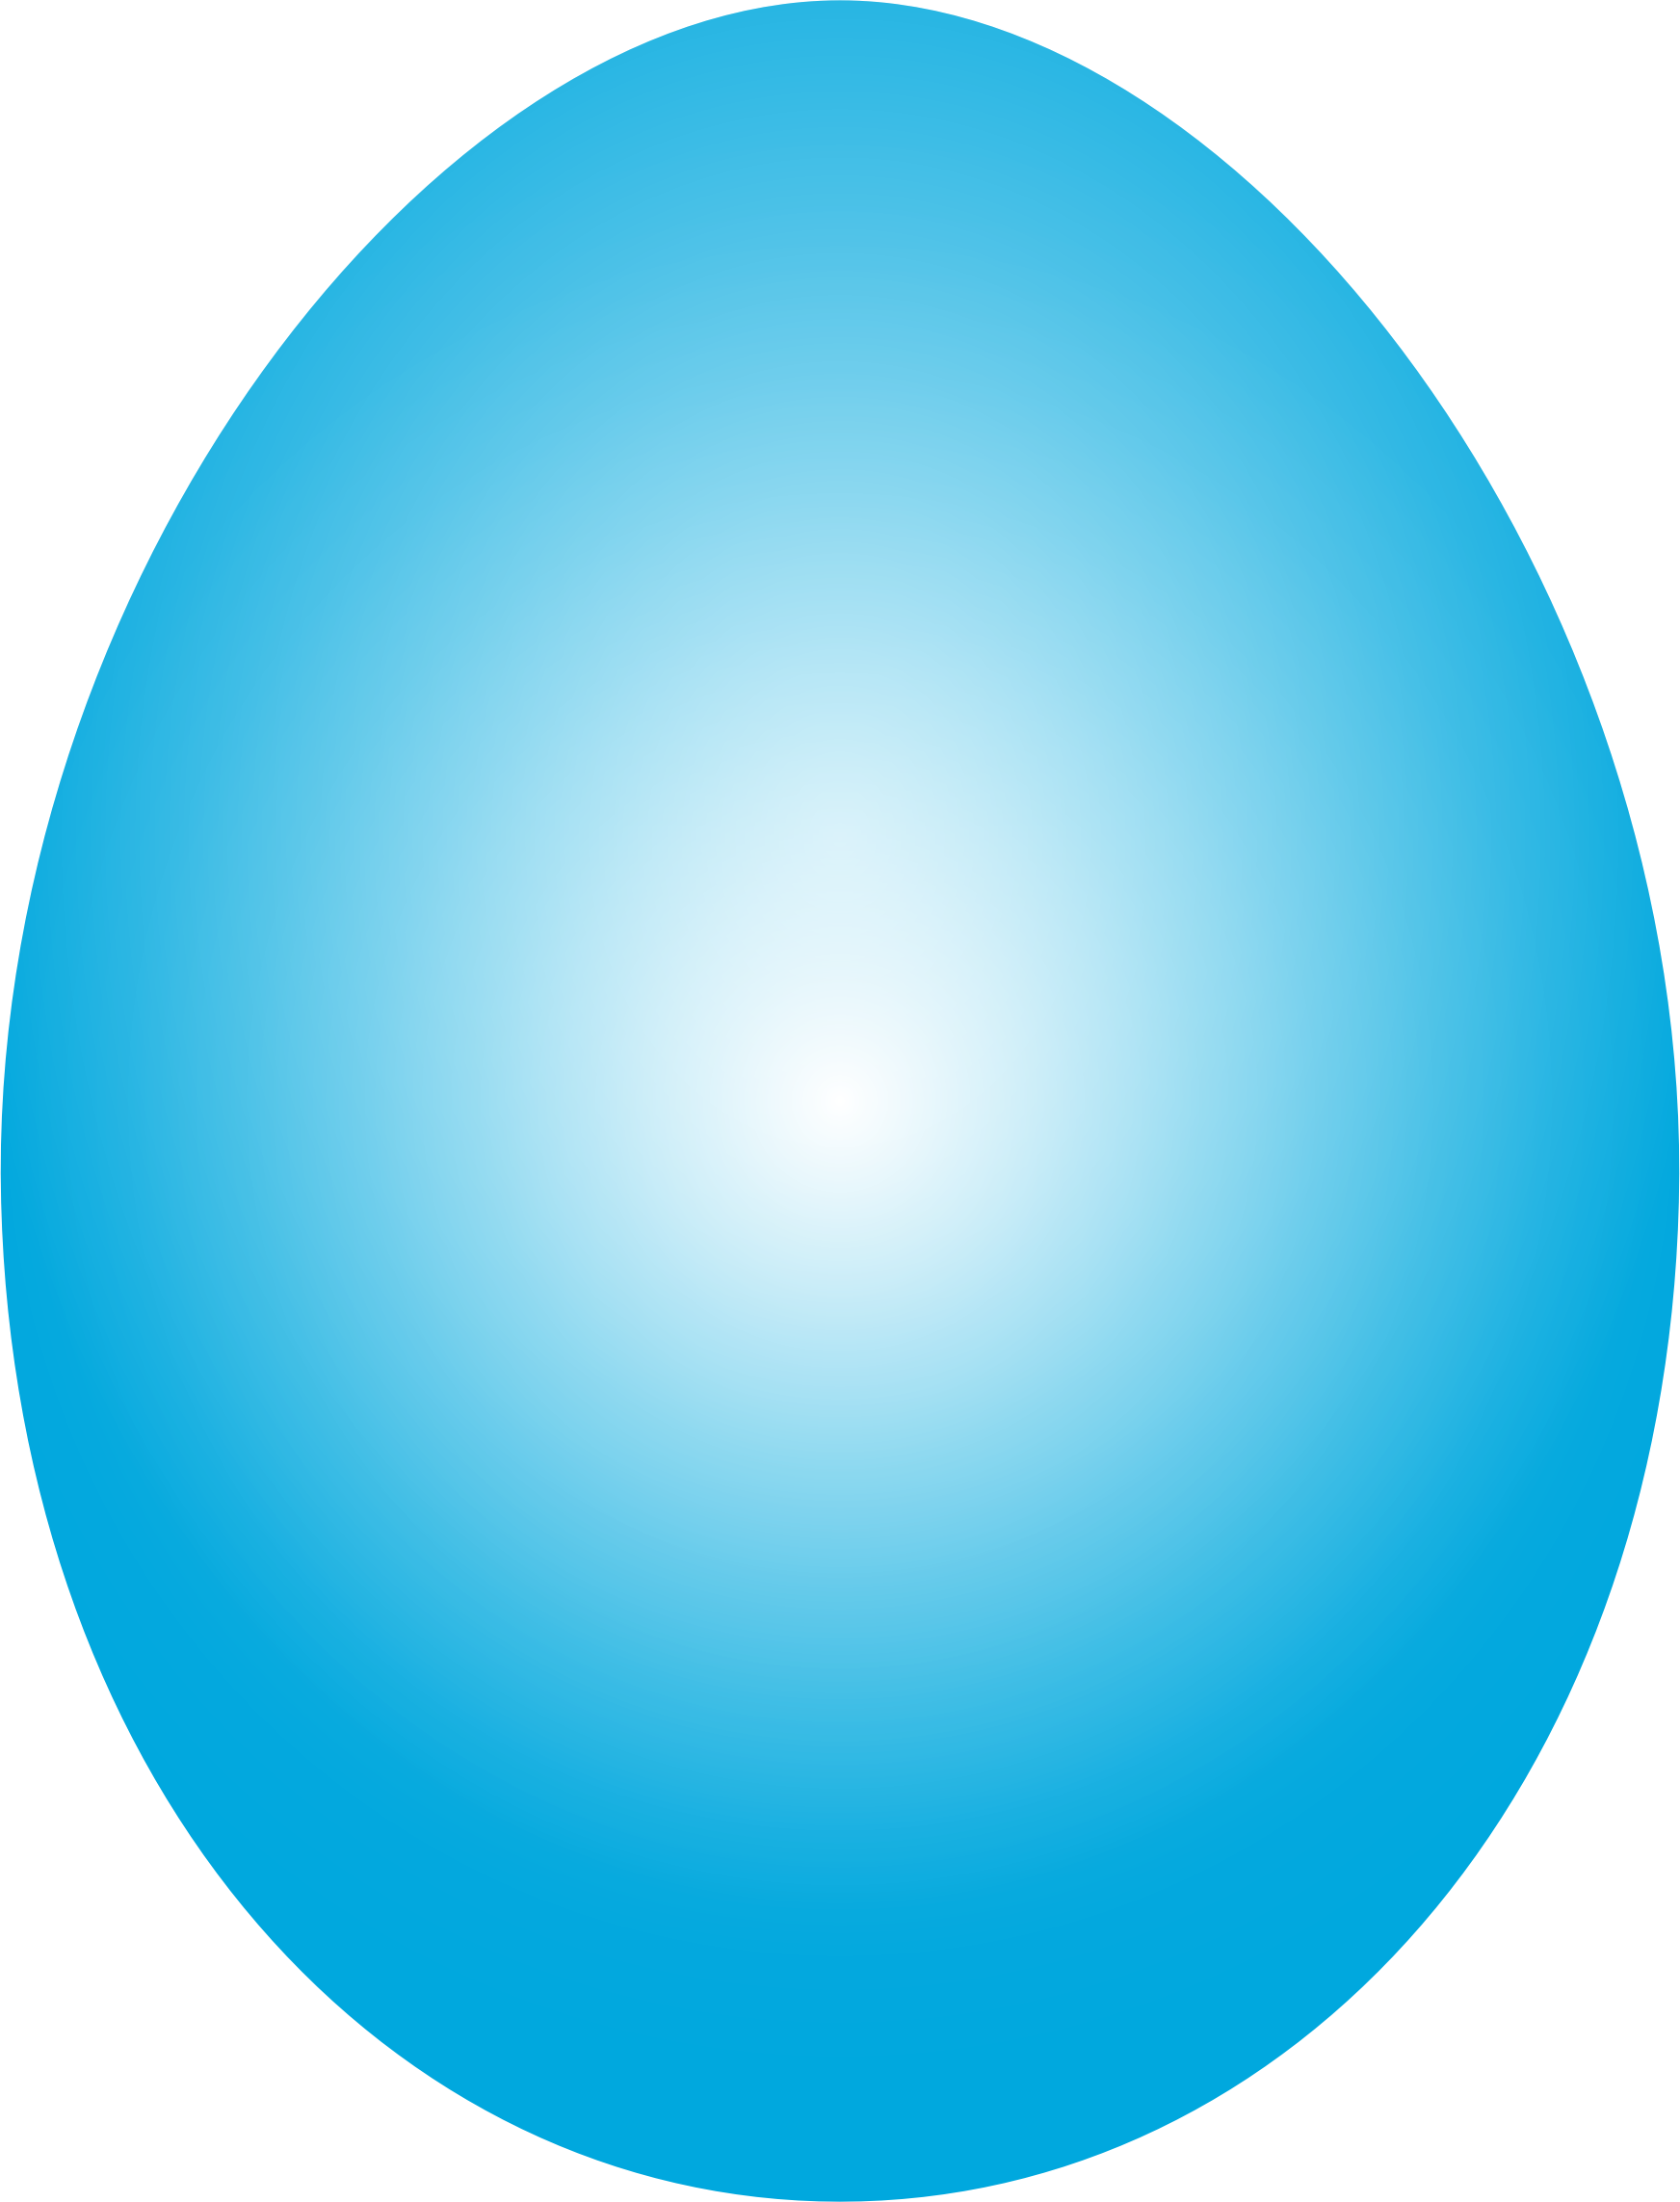 Cyan Easter Egg by GDJ